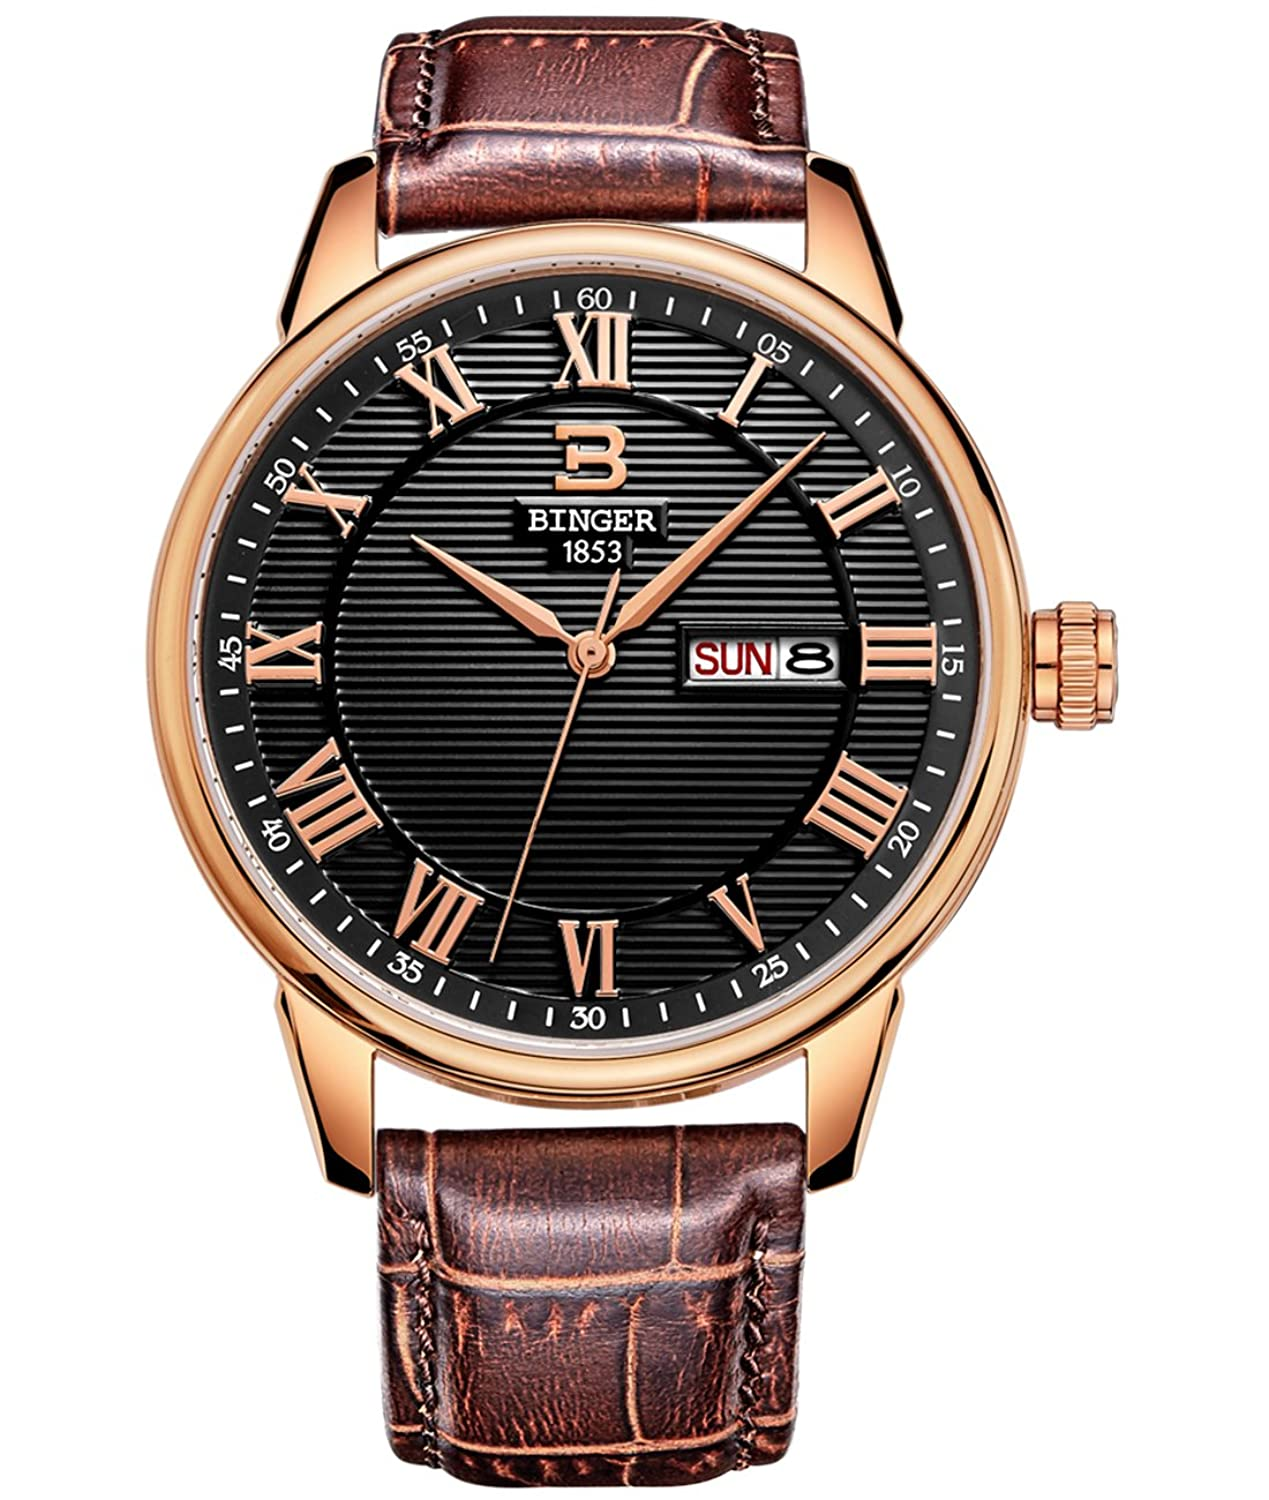 BINGER Mens Day Date Dress Watch Black With Roman Numeral Rose Gold Tone And Brown Leather Strap 37M-1B